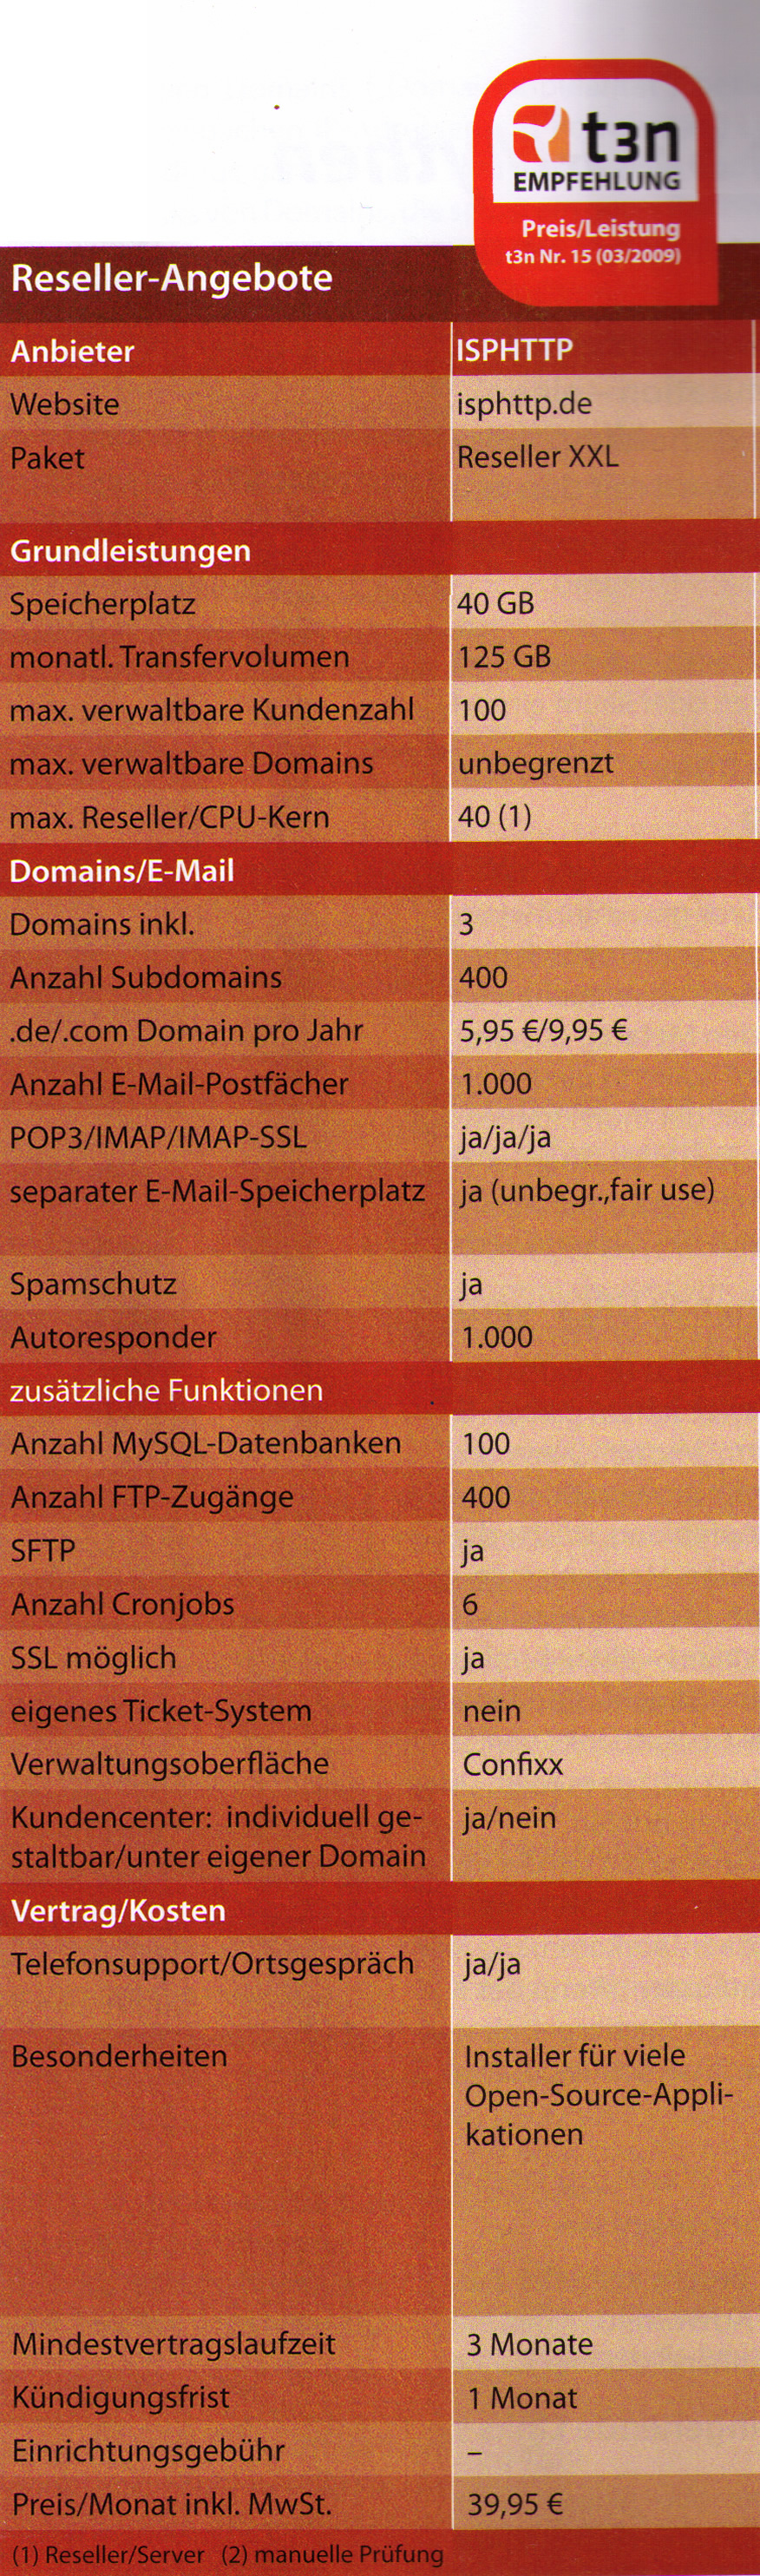 T3N Magazin - Reseller Webhosting Empfehlung 3/2009